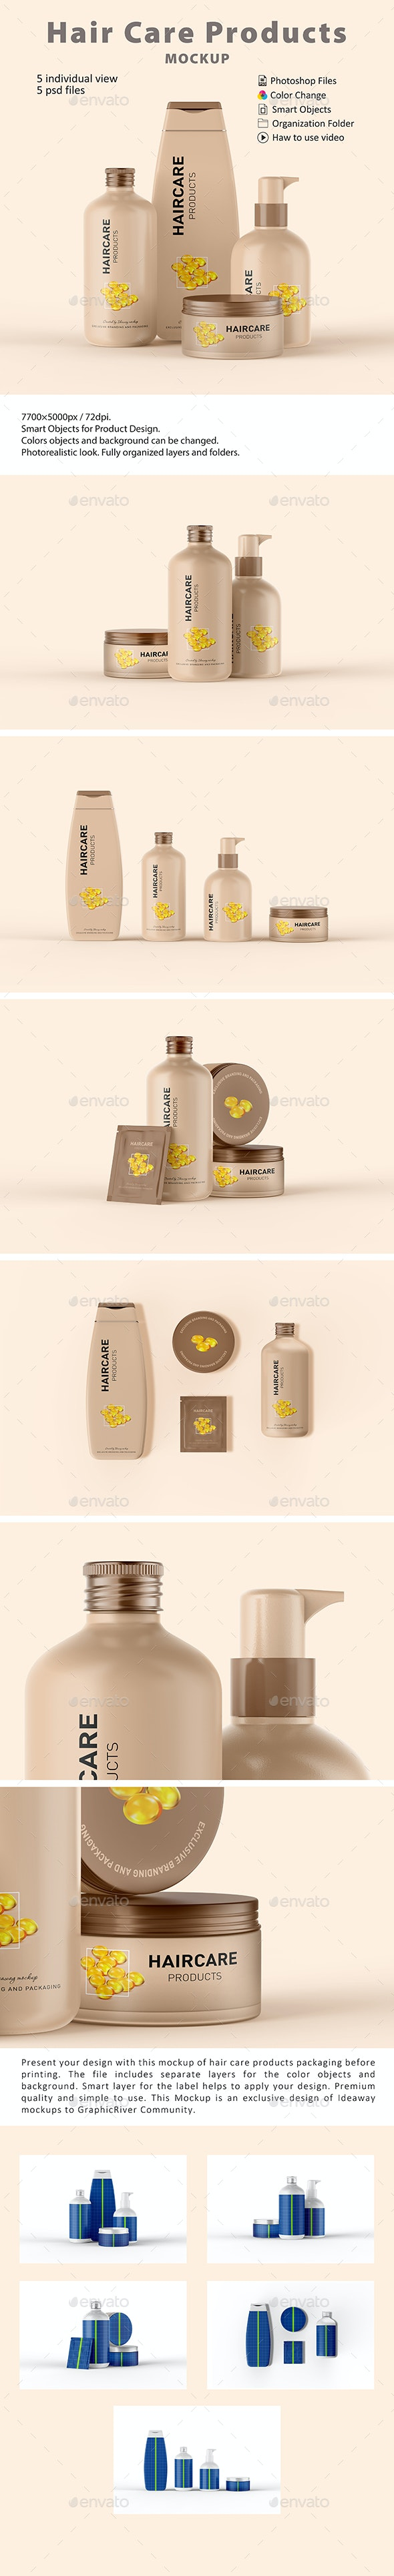 Cosmetic Hair Care Products Mockup - Beauty Packaging